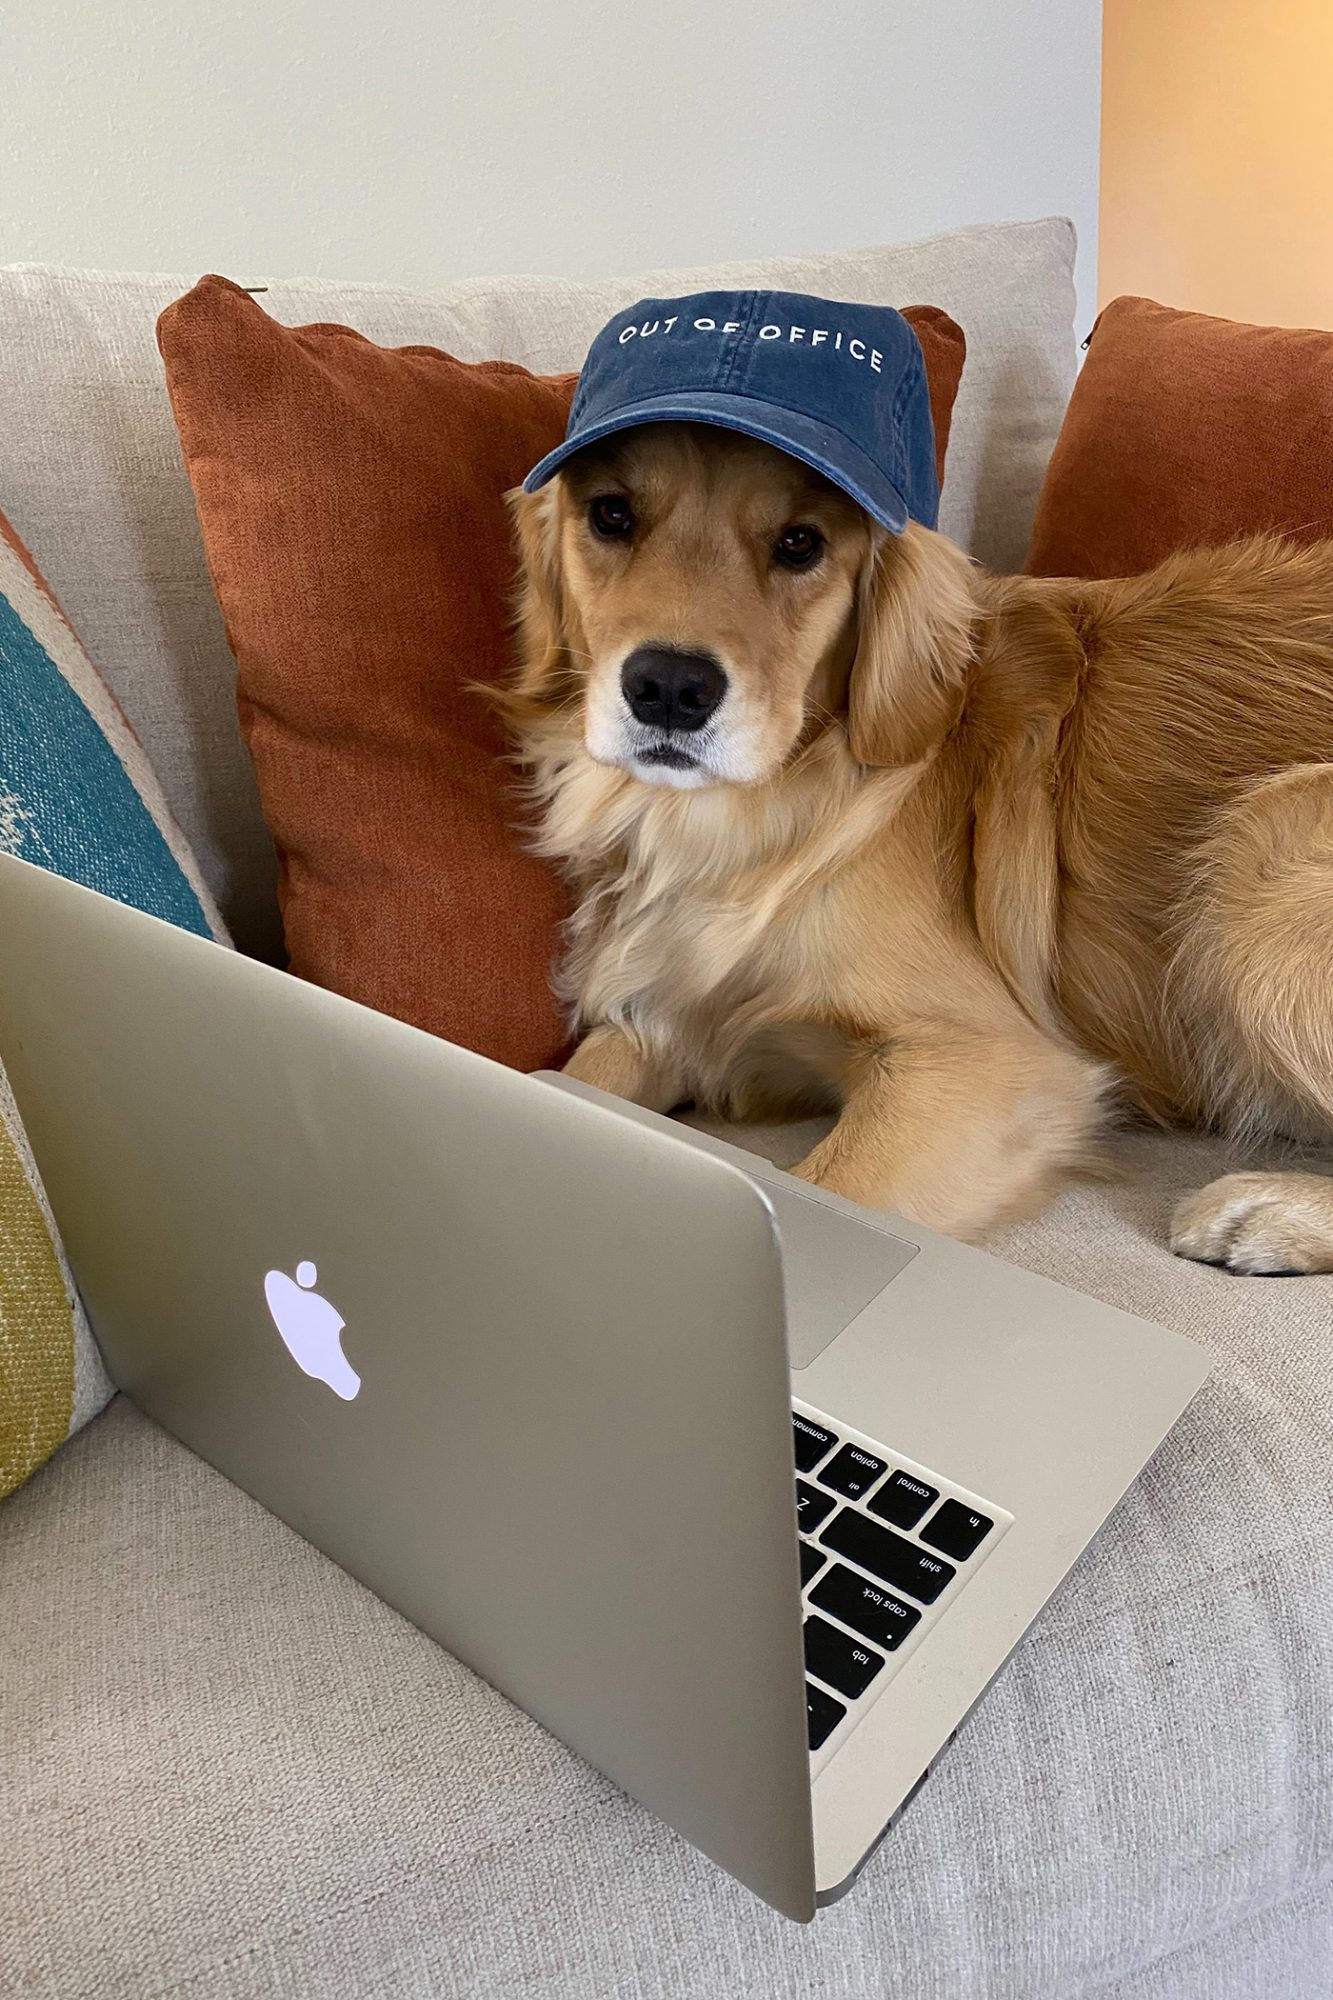 Golden retriever in a hat looks at laptop